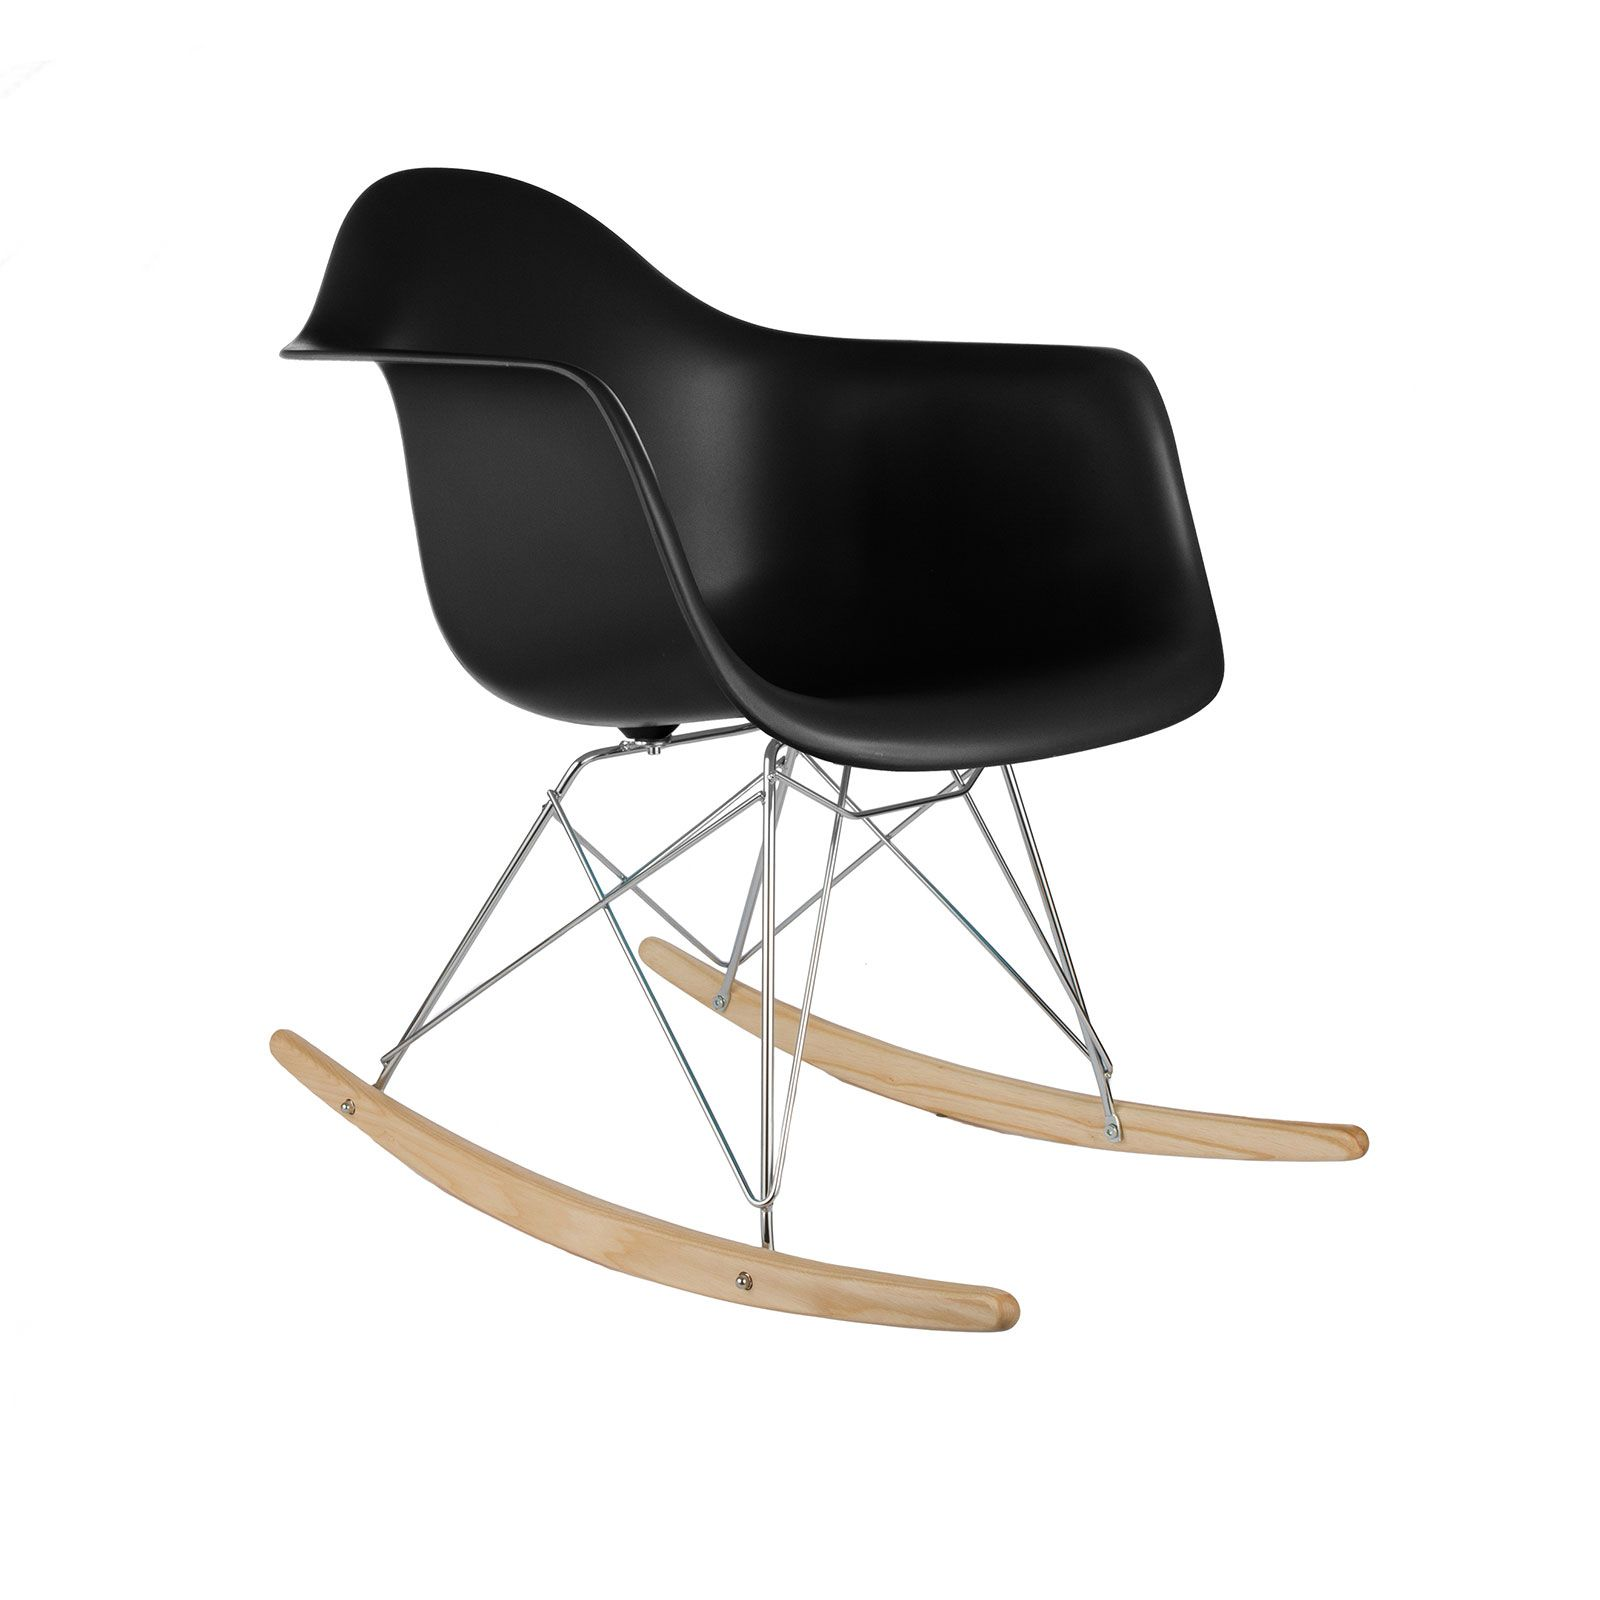 Modern Ash Wood Rocker In Black, Herman Miller Design -